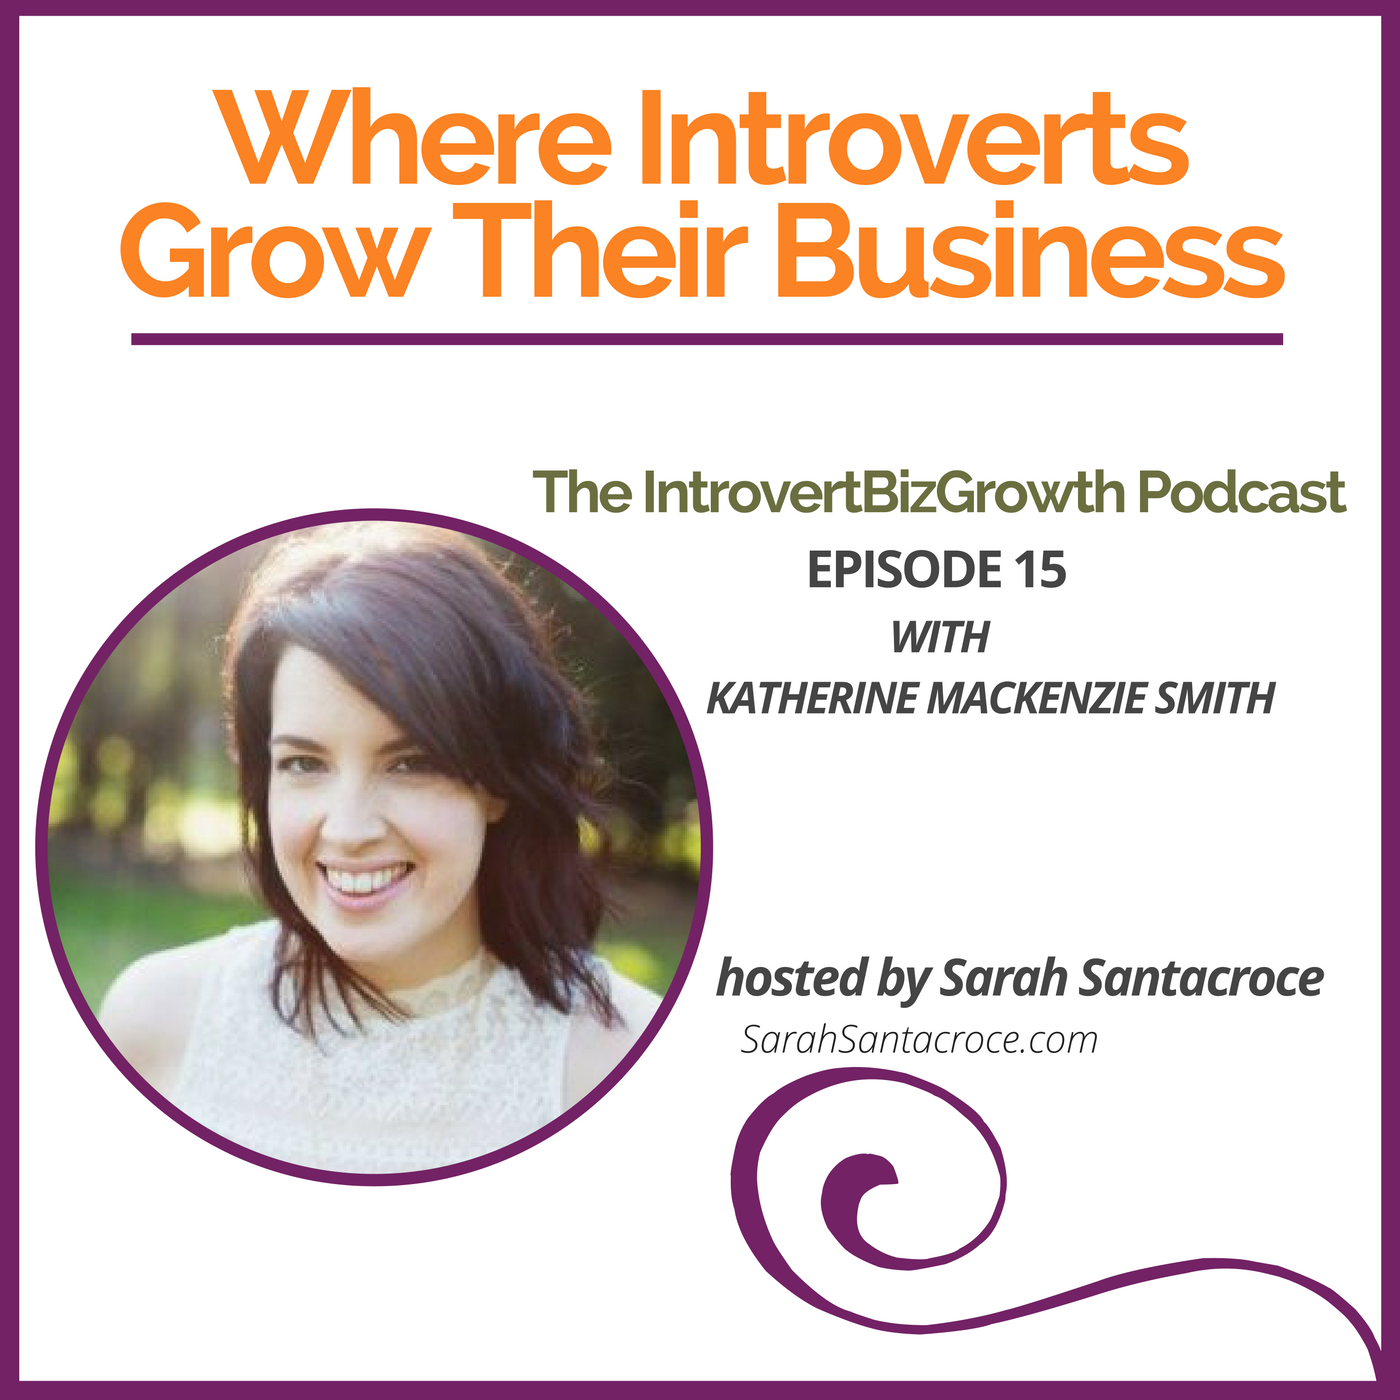 BizGrowth Podcast with Katherine Mackenzie Smith